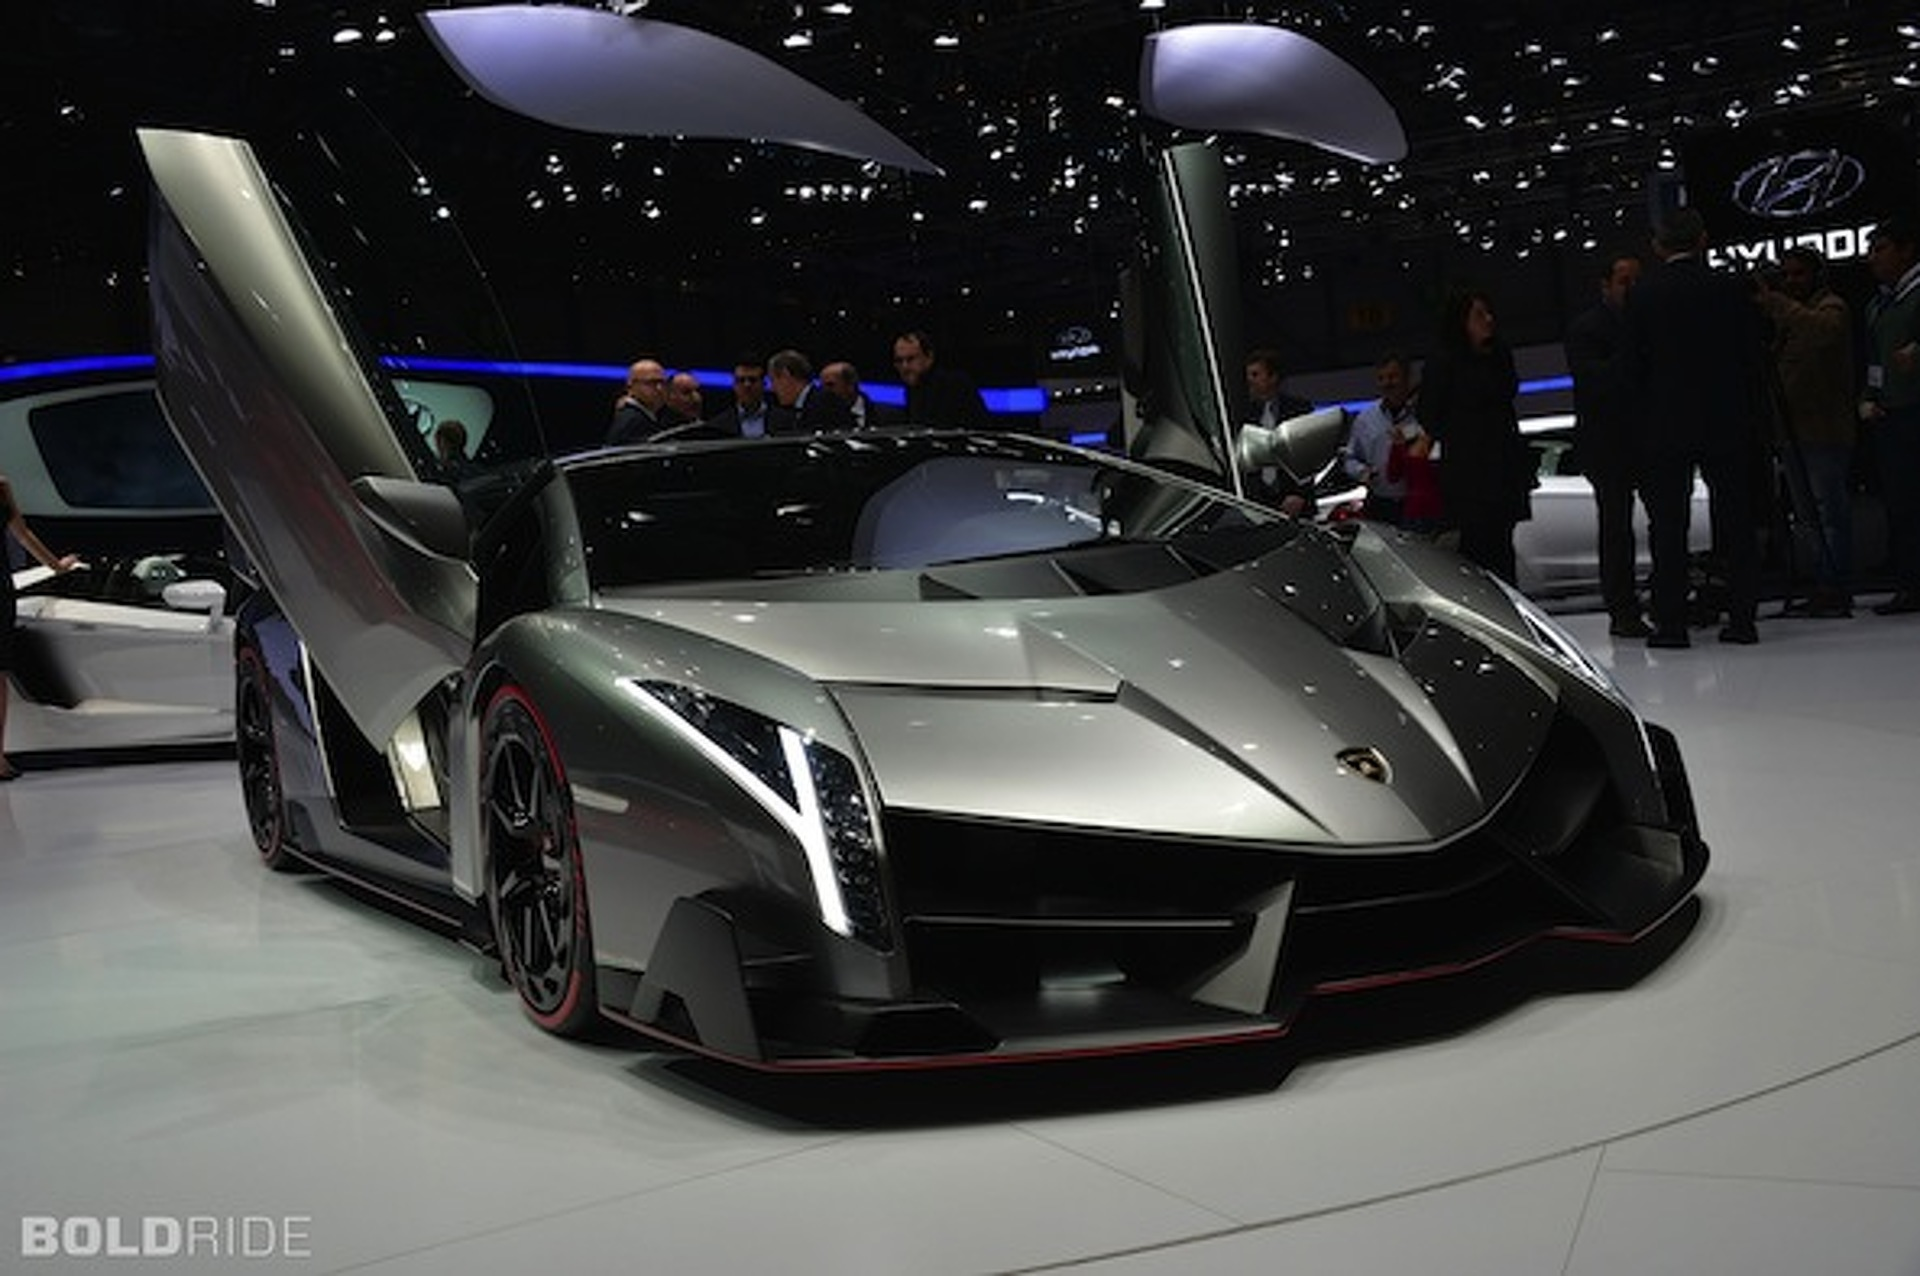 Bold Ride of the Week: Lamborghini Veneno